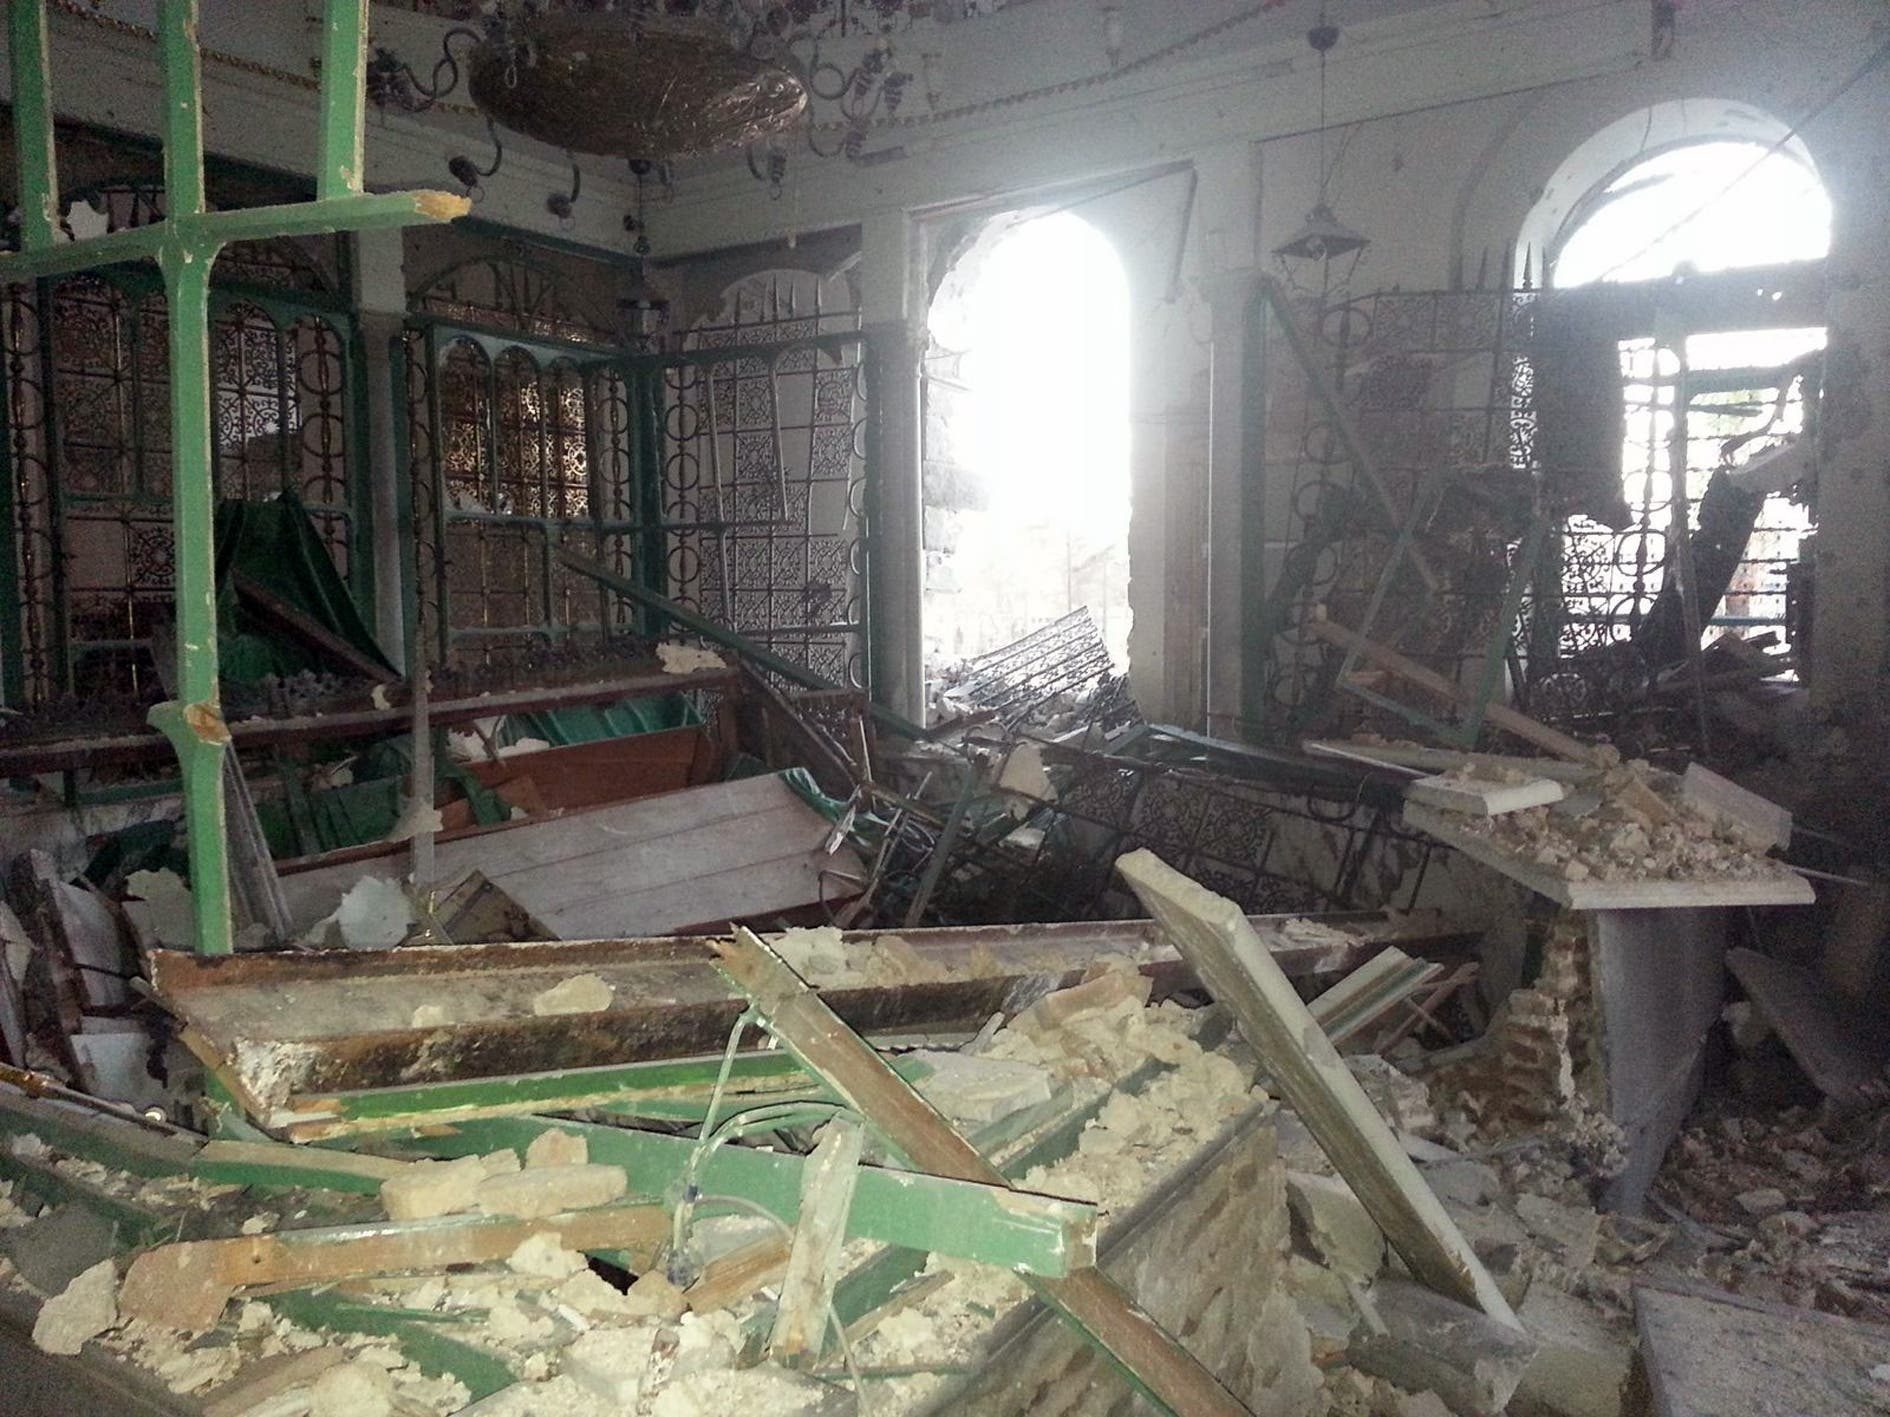 A handout image released by the Syrian opposition's Shaam News Network on July 22, 2013, allegedly shows the partially destroyed mausoleum of the Khaled bin Walid mosque (AFP/HO/SHAAM NEWS NETWORK)